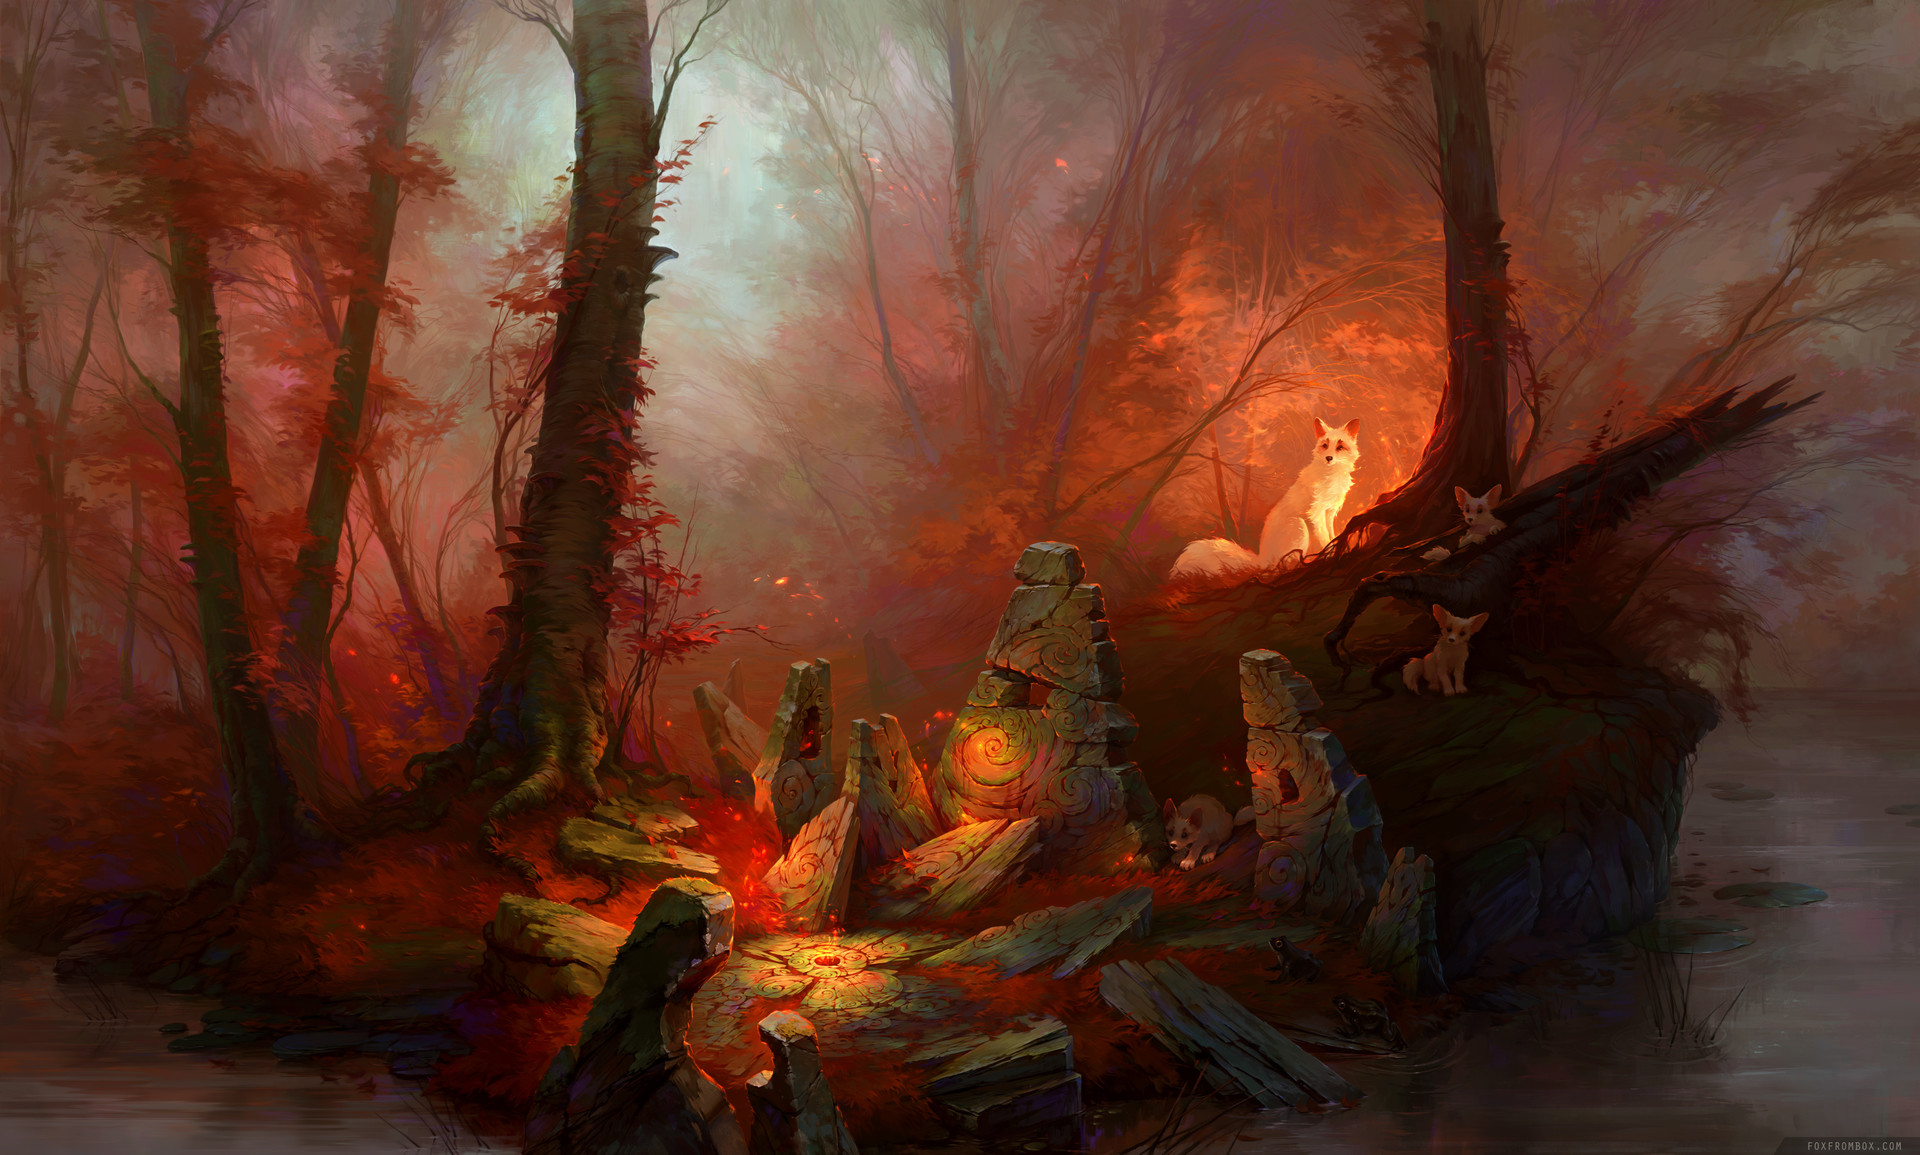 Alina ivanchenko red magic forest final small